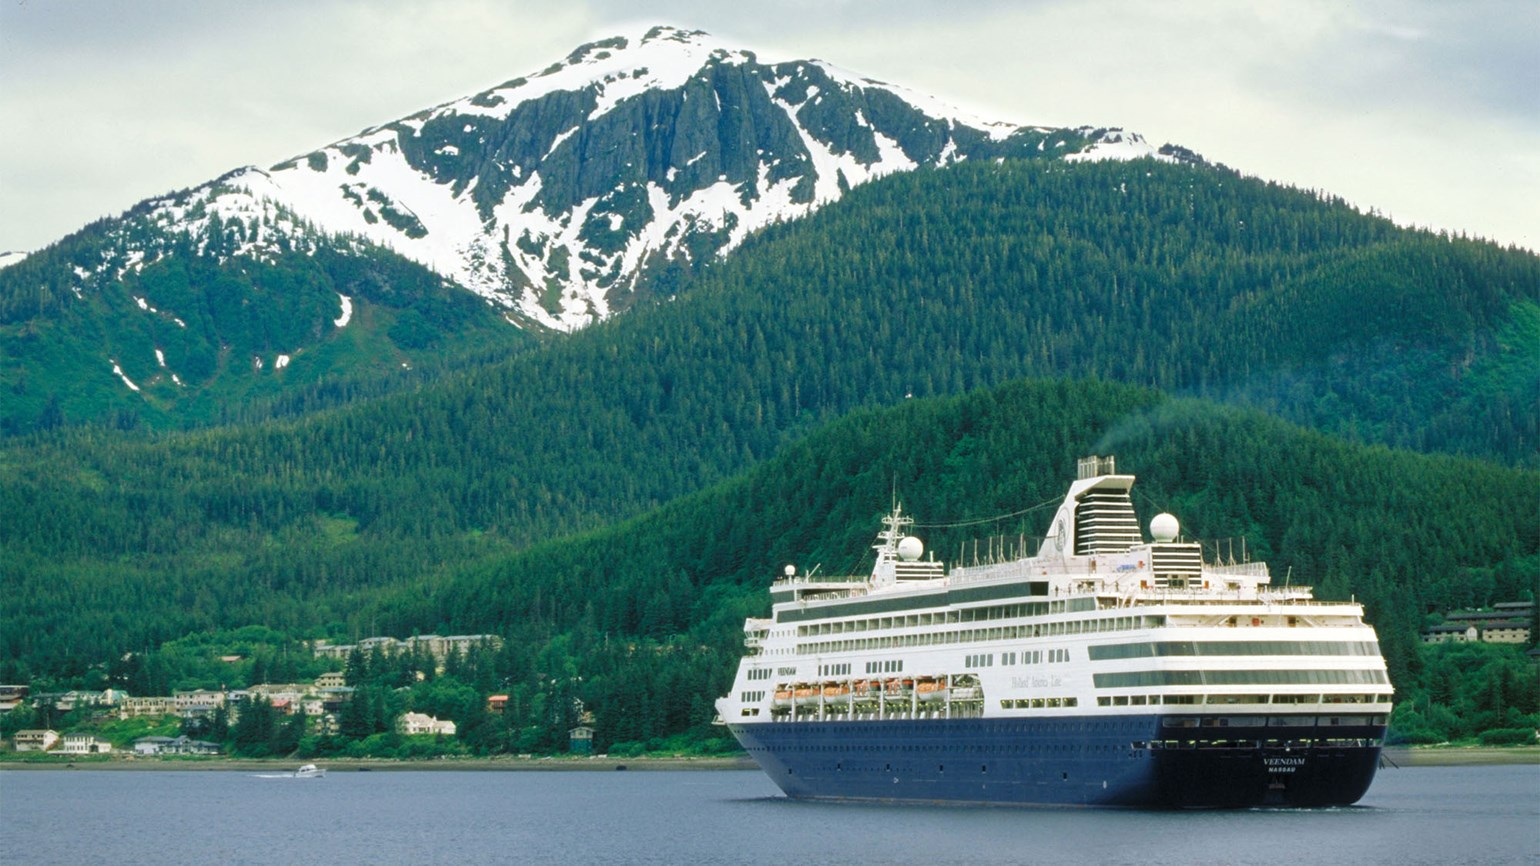 Alaska cruise passengers to exceed 1 million in 2016